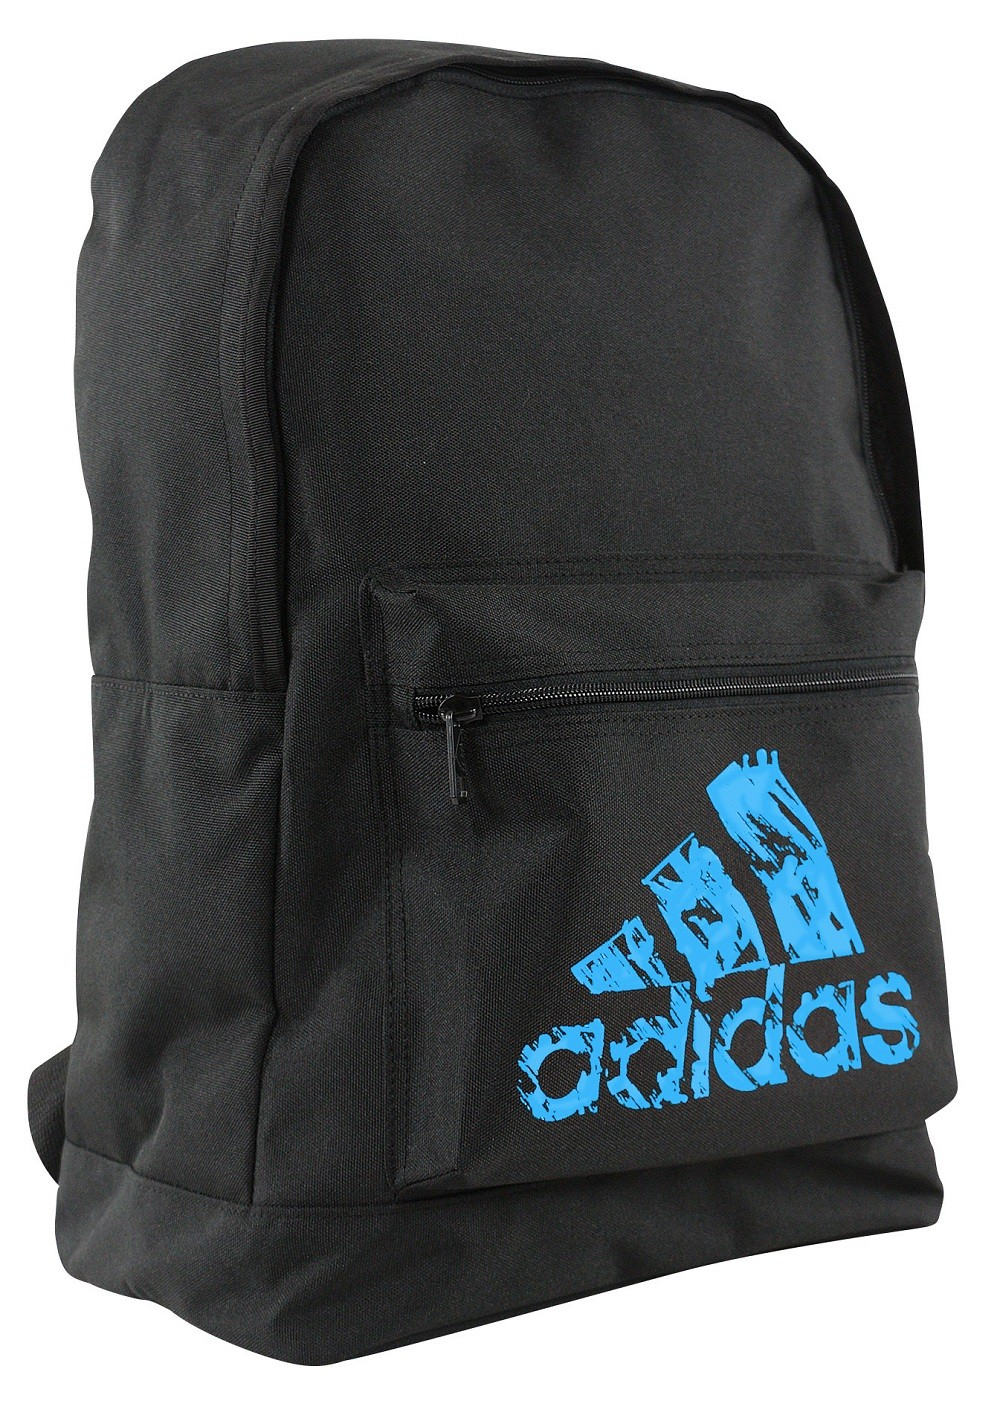 Backpack Basic Negro/Azul